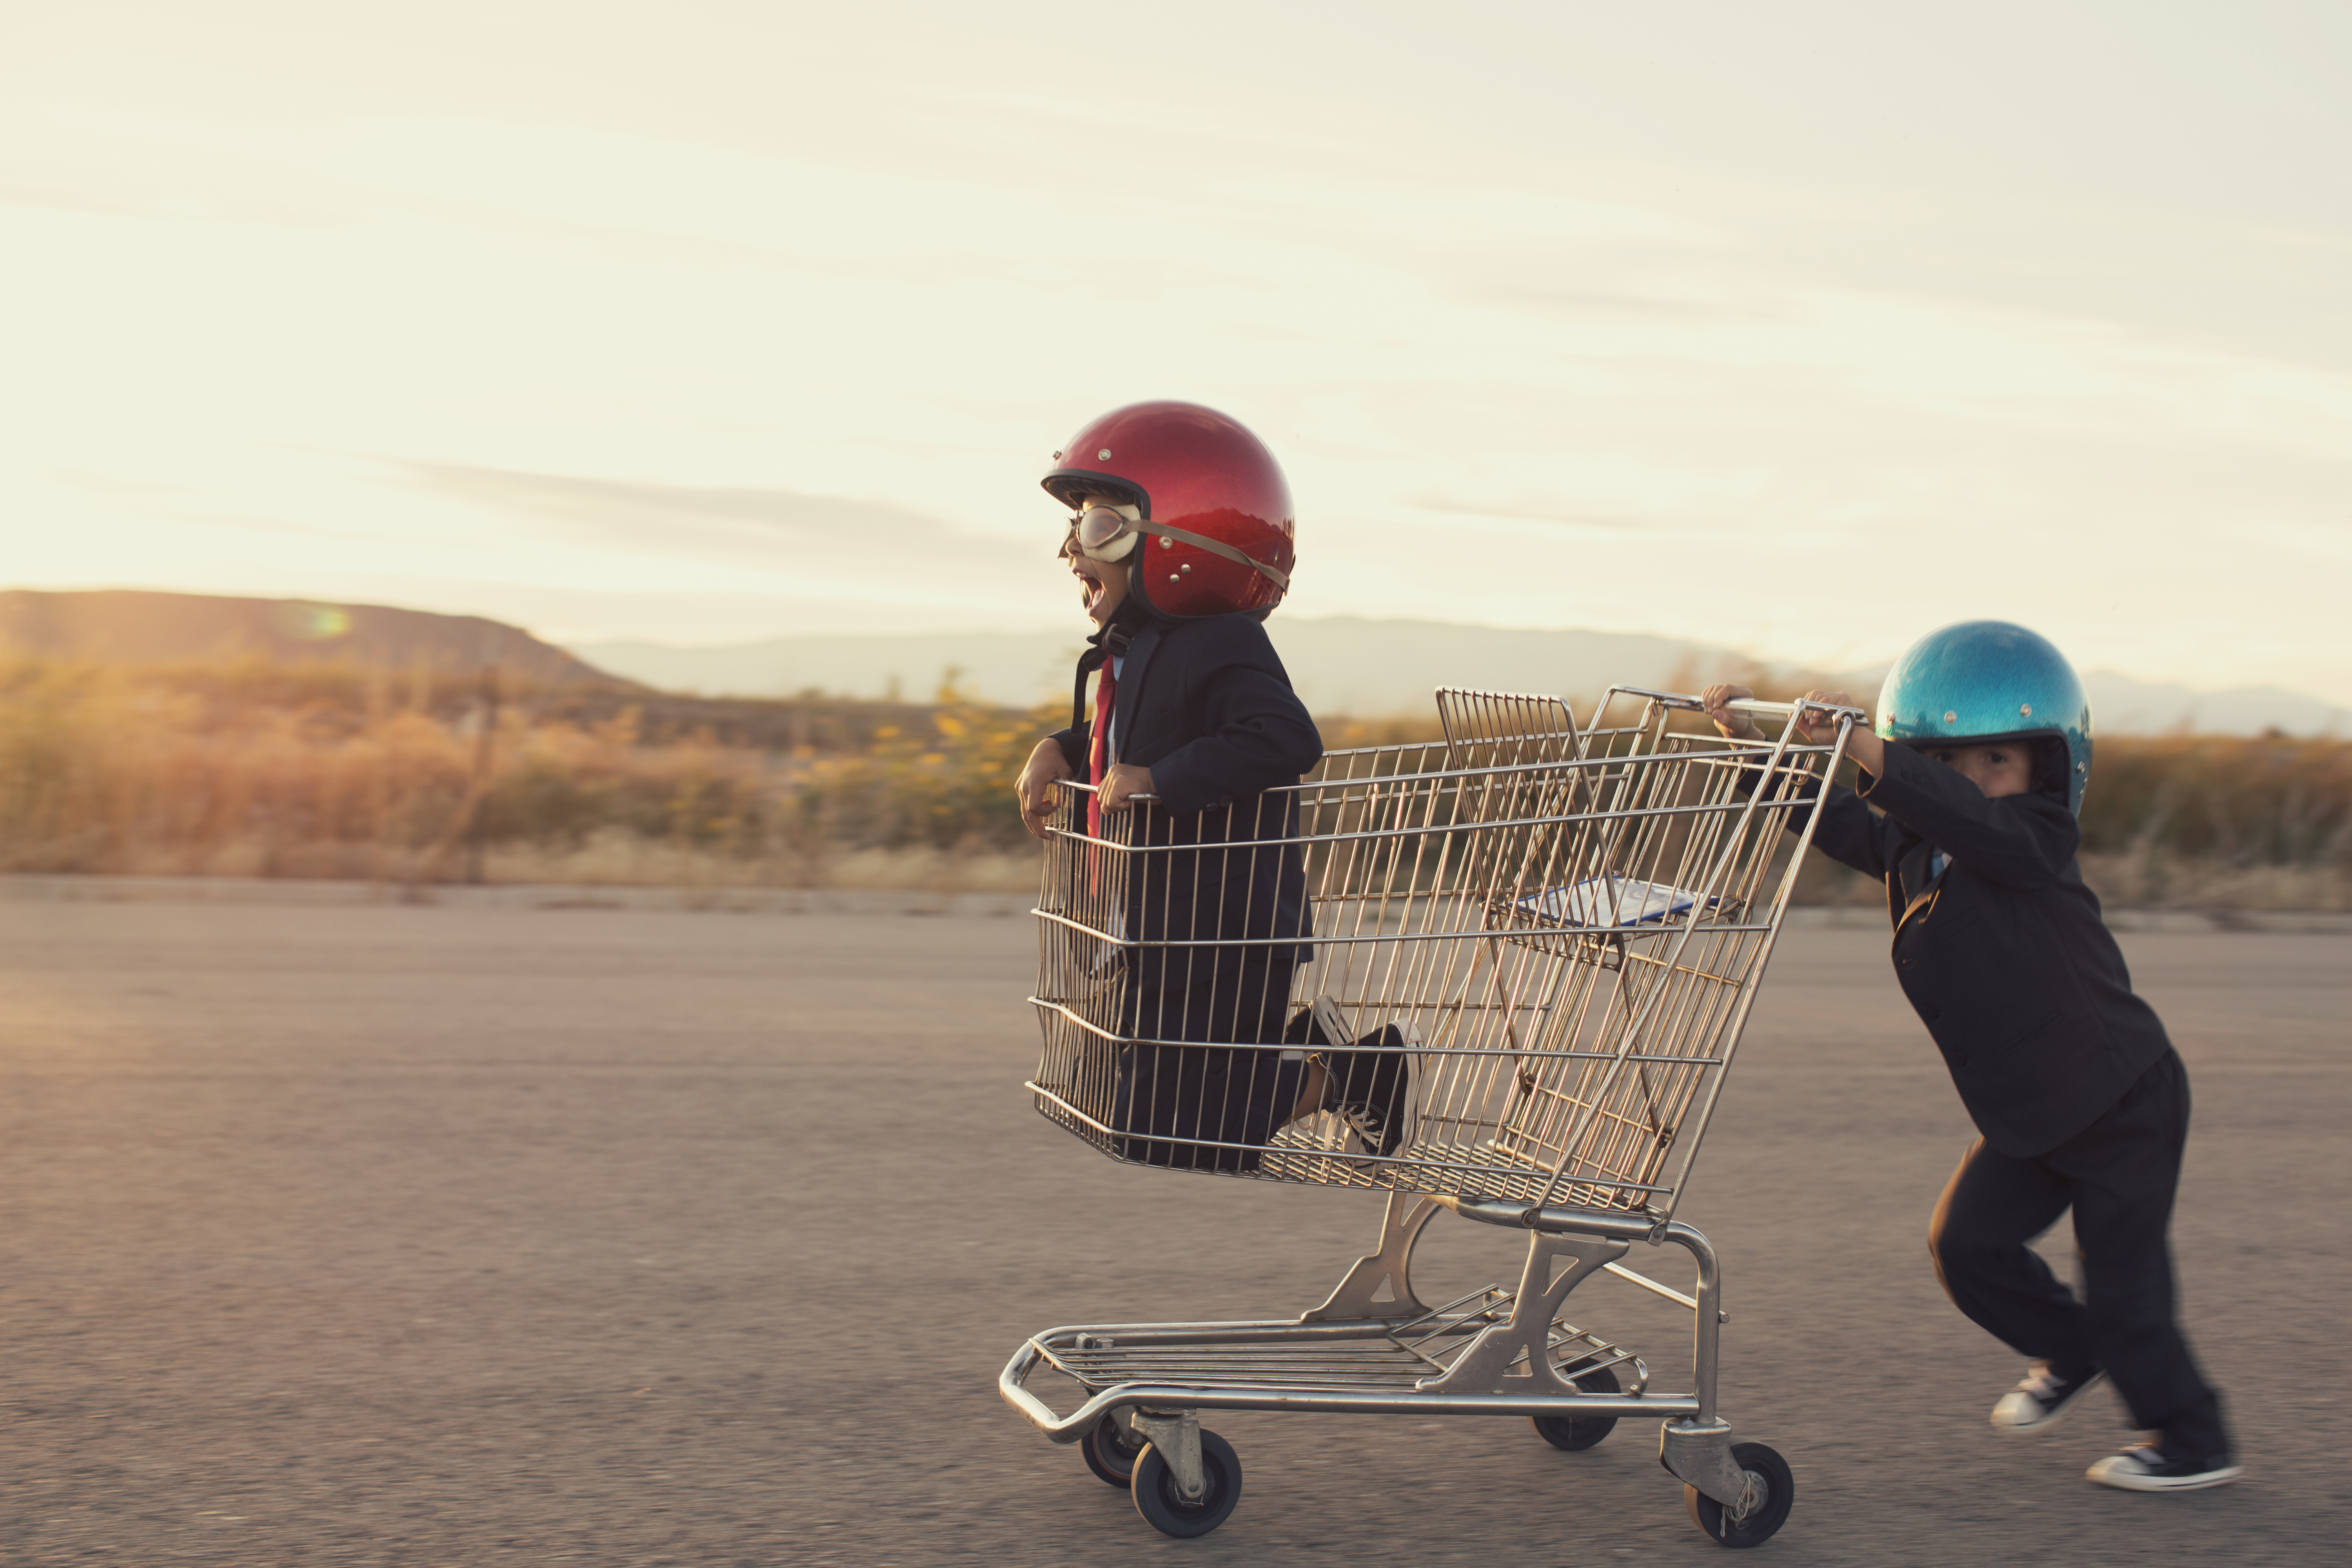 Young businessmen and boys dressed in business suits and racing helmets are ready to race their business to new levels. Boys race in a shopping cart in a Utah valley.